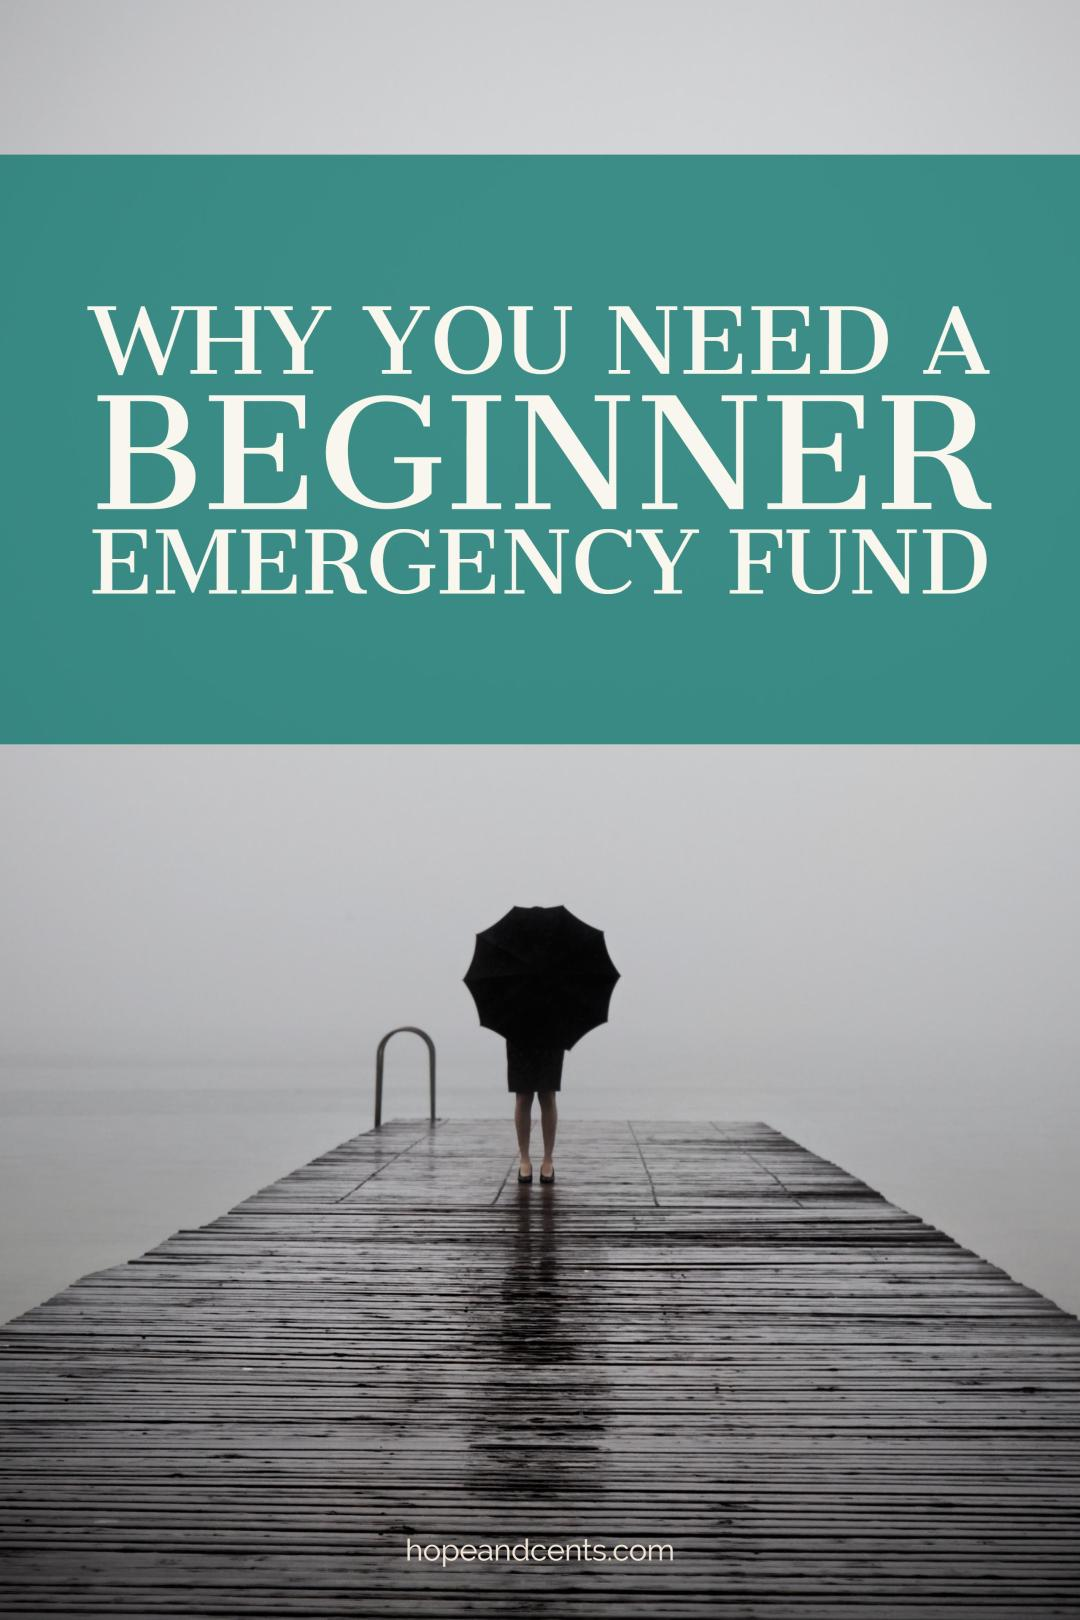 If you are currently working your way through paying off debt or are considering starting, it is possible you are missing an important step — having an emergency fund.